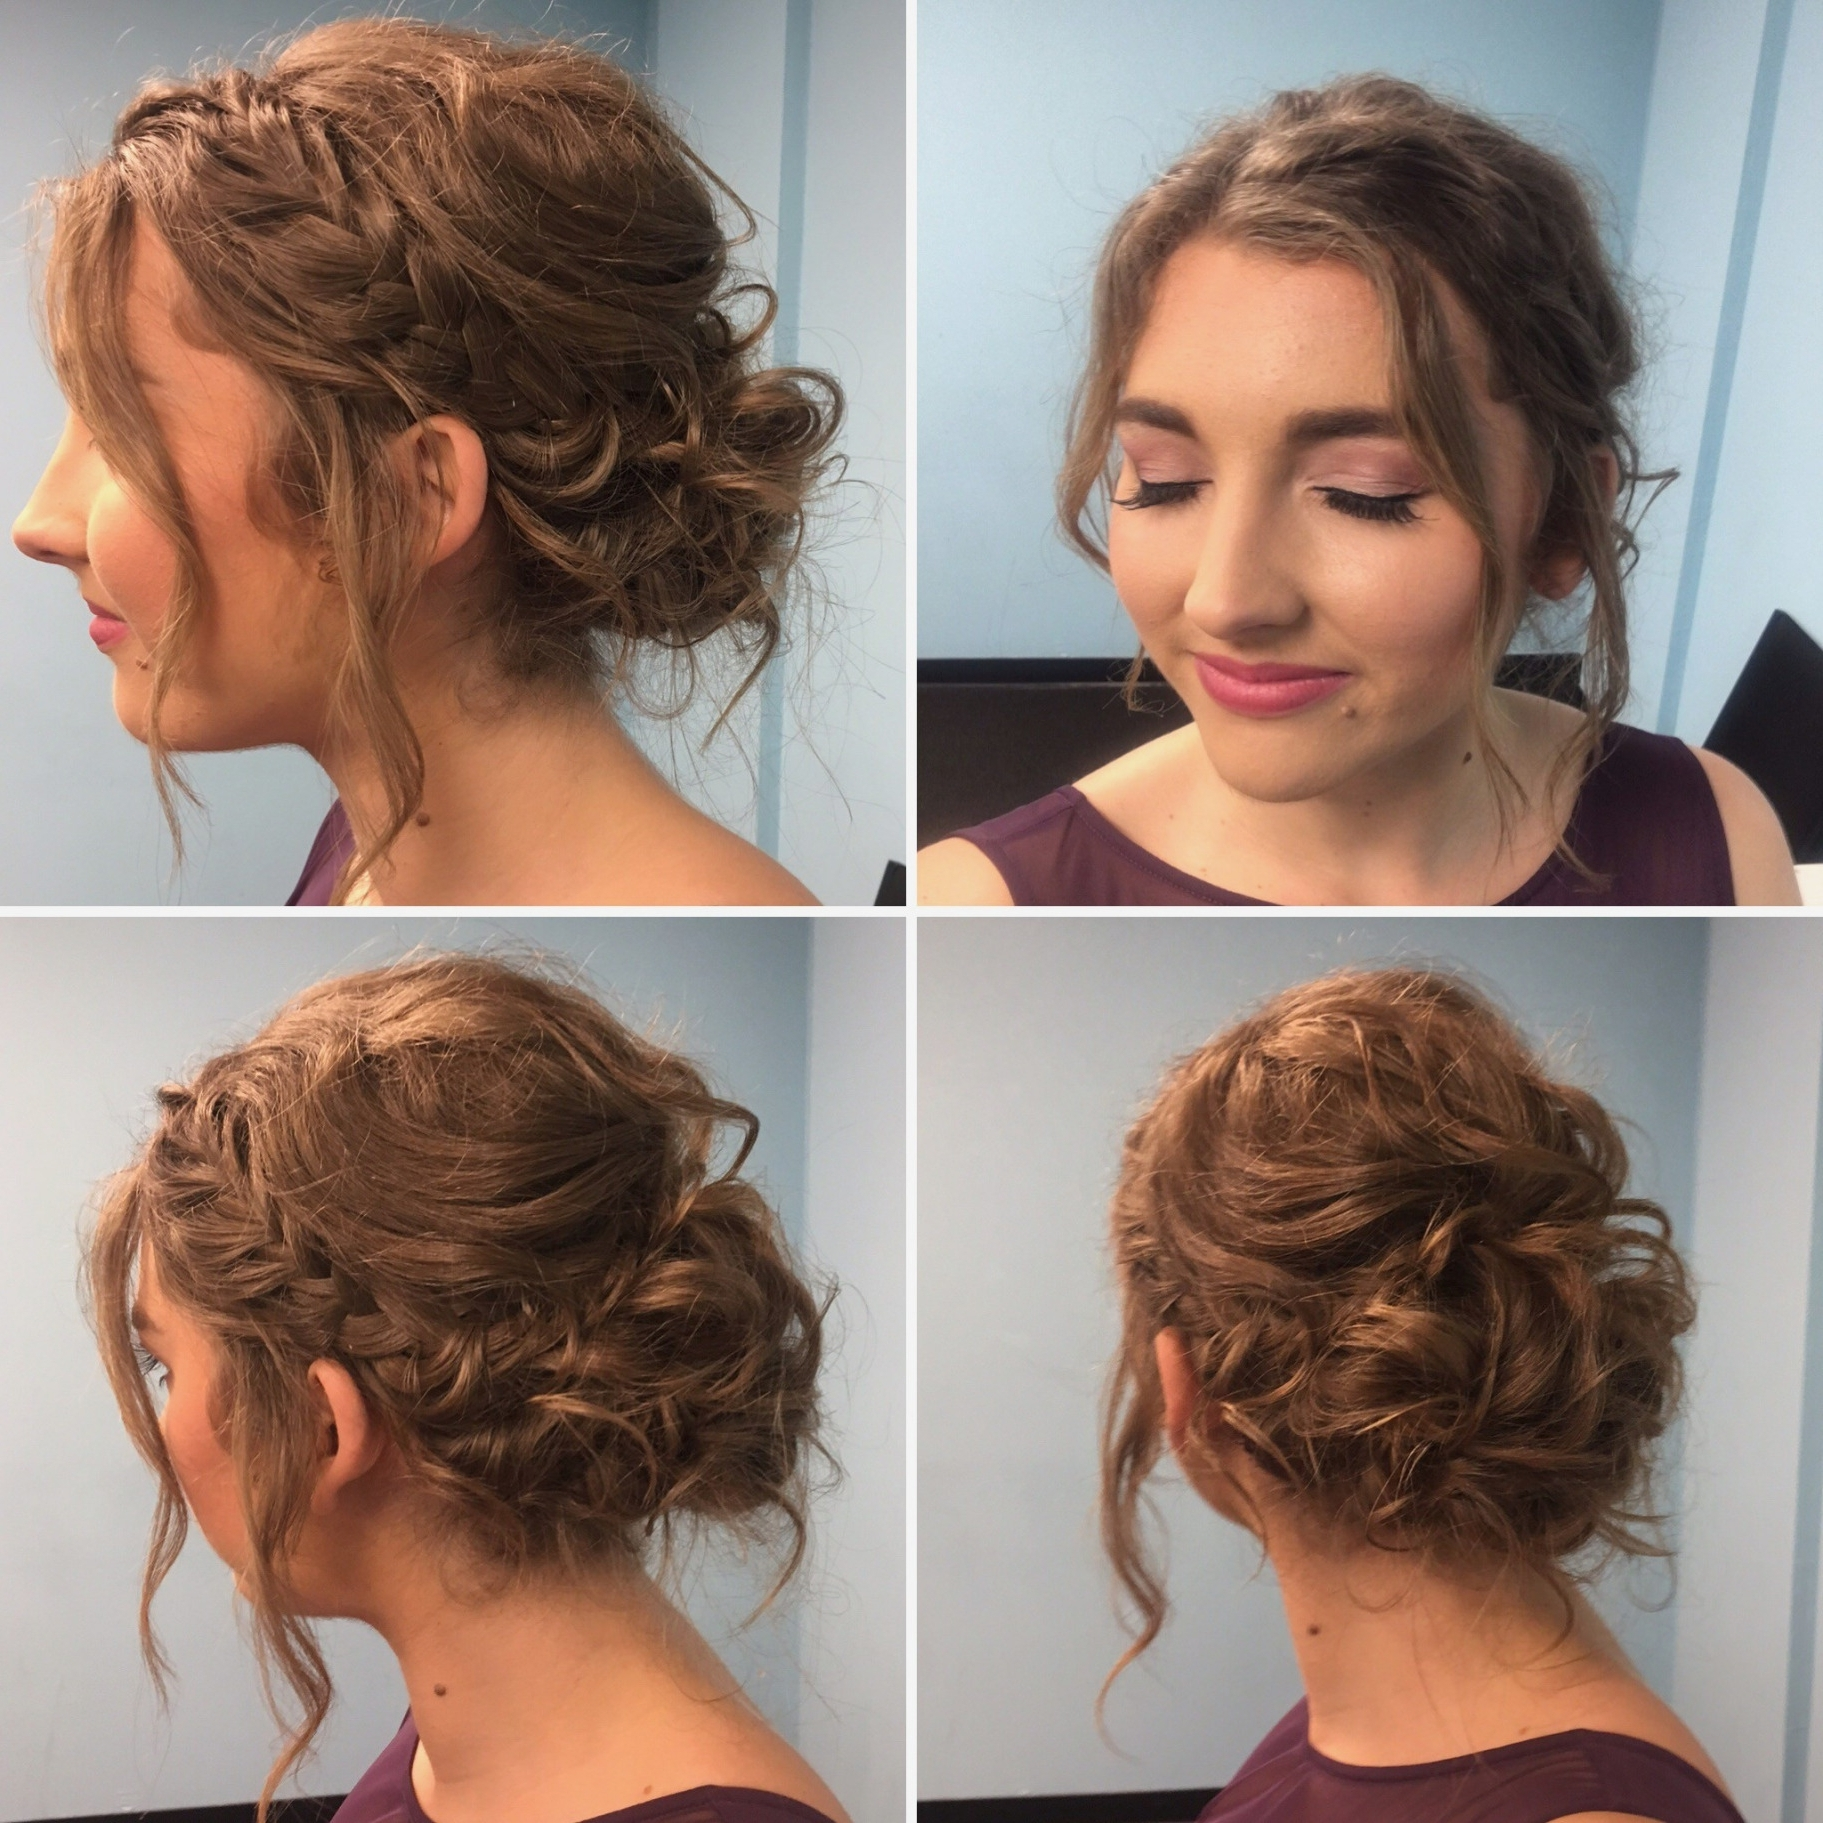 Favorite Wedding Hairstyles For Short Hair For Bridesmaids Regarding Short Hairstyles : New Bridesmaid Hairstyles For Short Hair Pics (Gallery 1 of 15)